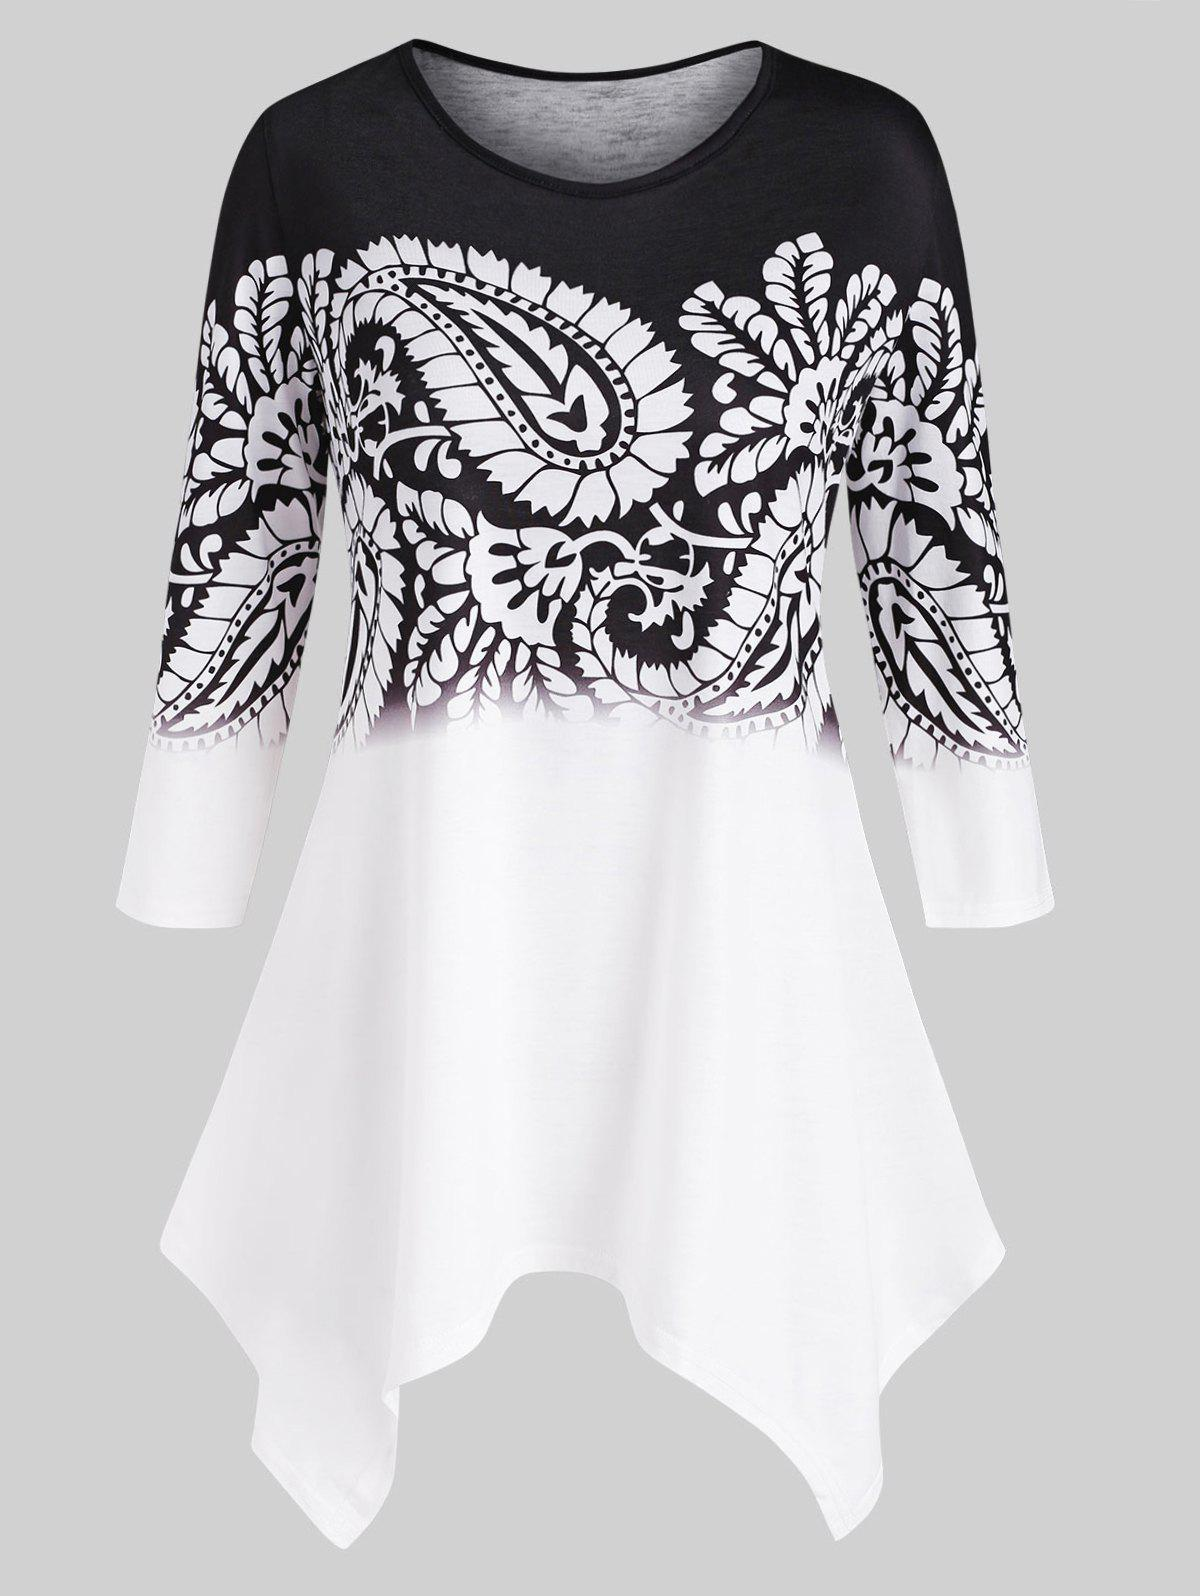 Paisley Printed Handkerchief Plus Size Top - BLACK 3X